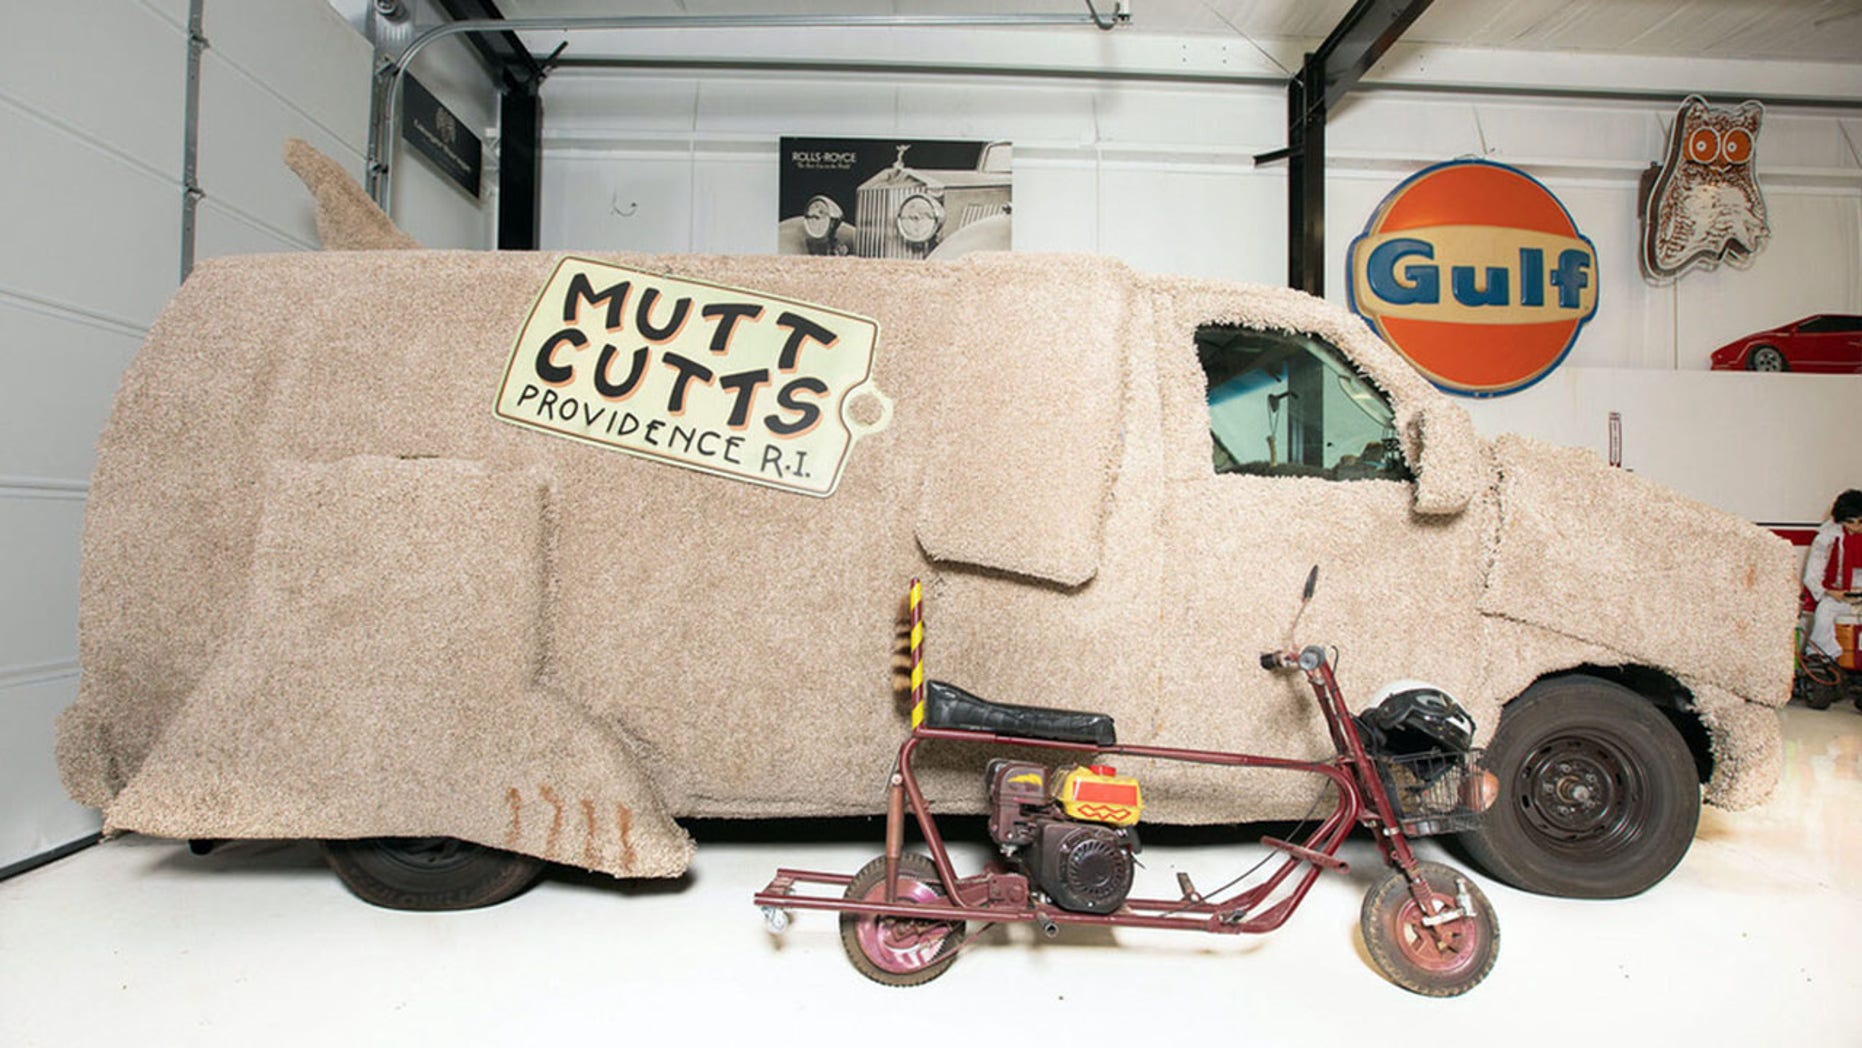 Shaggin Wagon from Dumb and Dumber